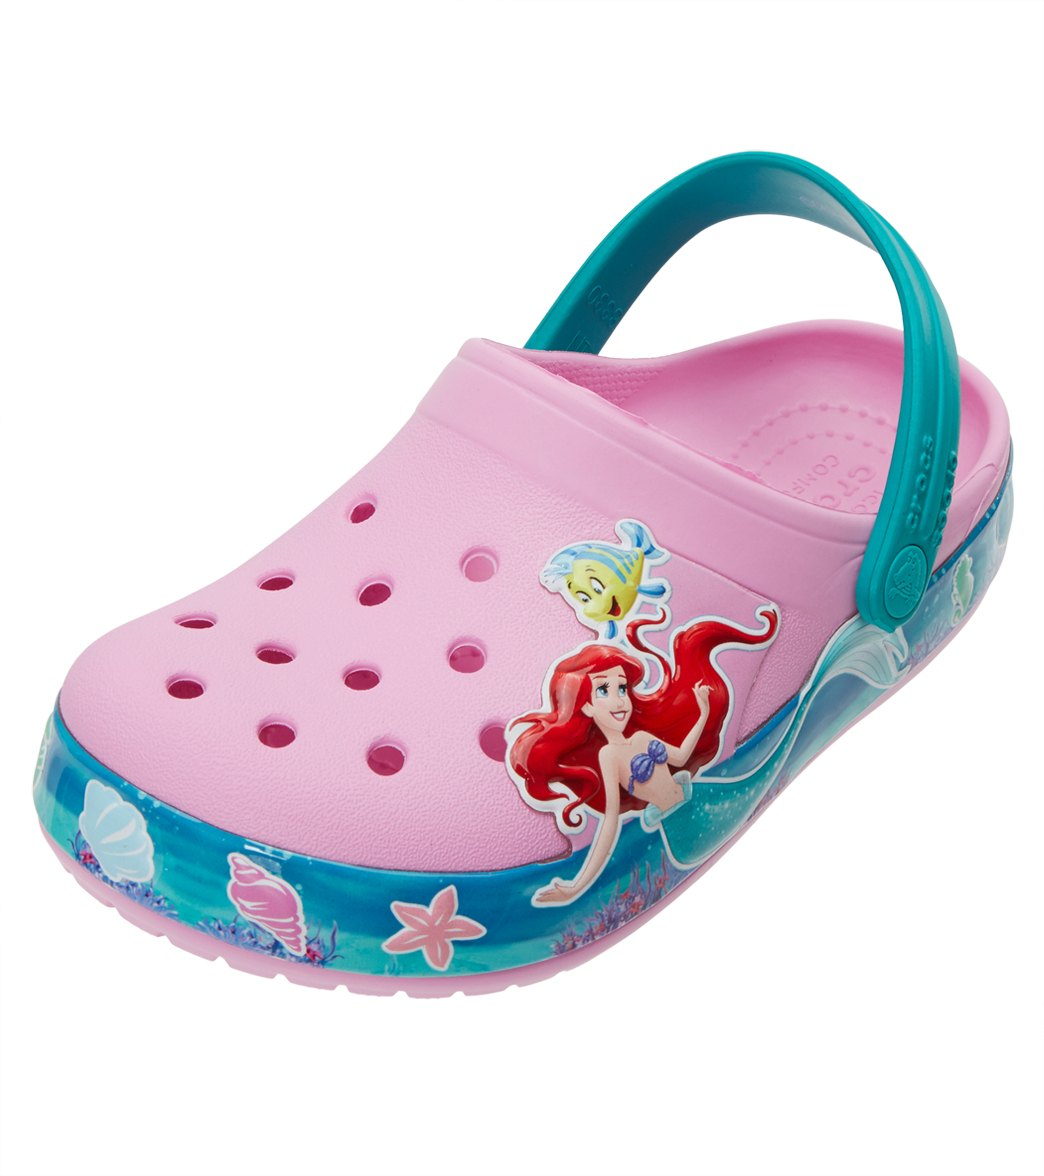 2dfc1883b Crocs Kids  Crocband™ Princess Ariel™ Clogs (Toddler